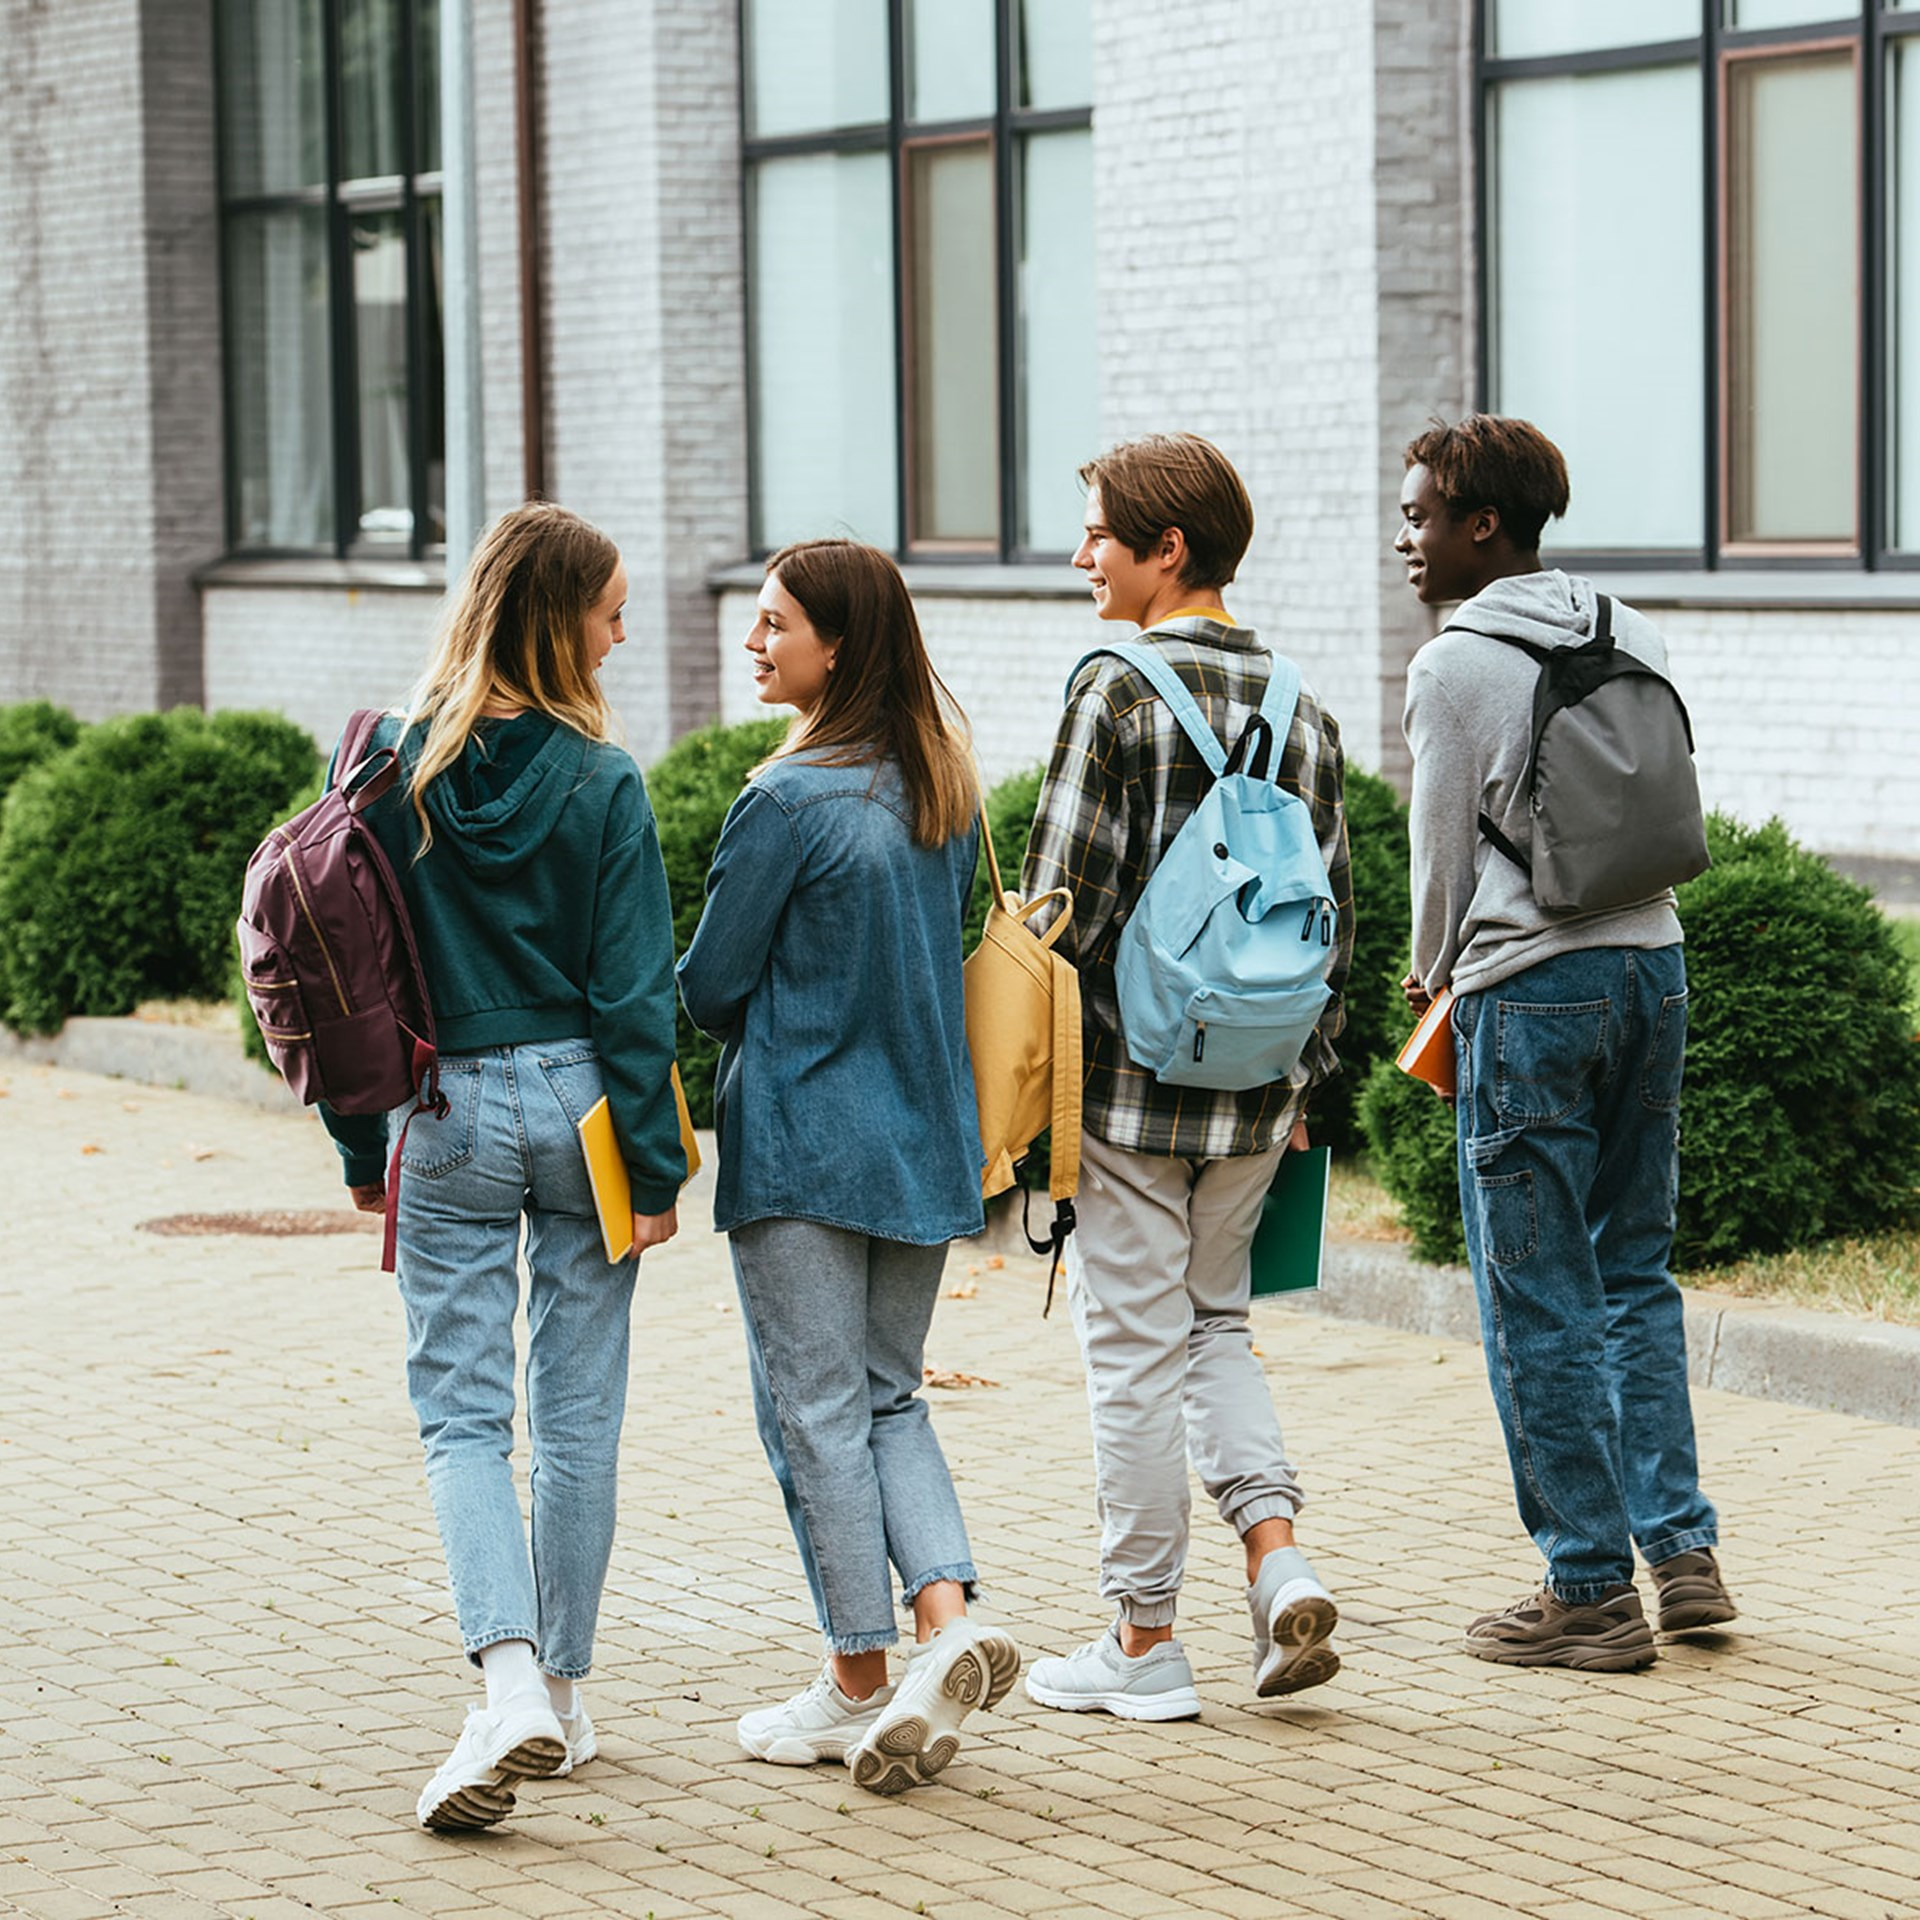 42823841 Back View Of Smiling Teenagers With Backpacks Walking On